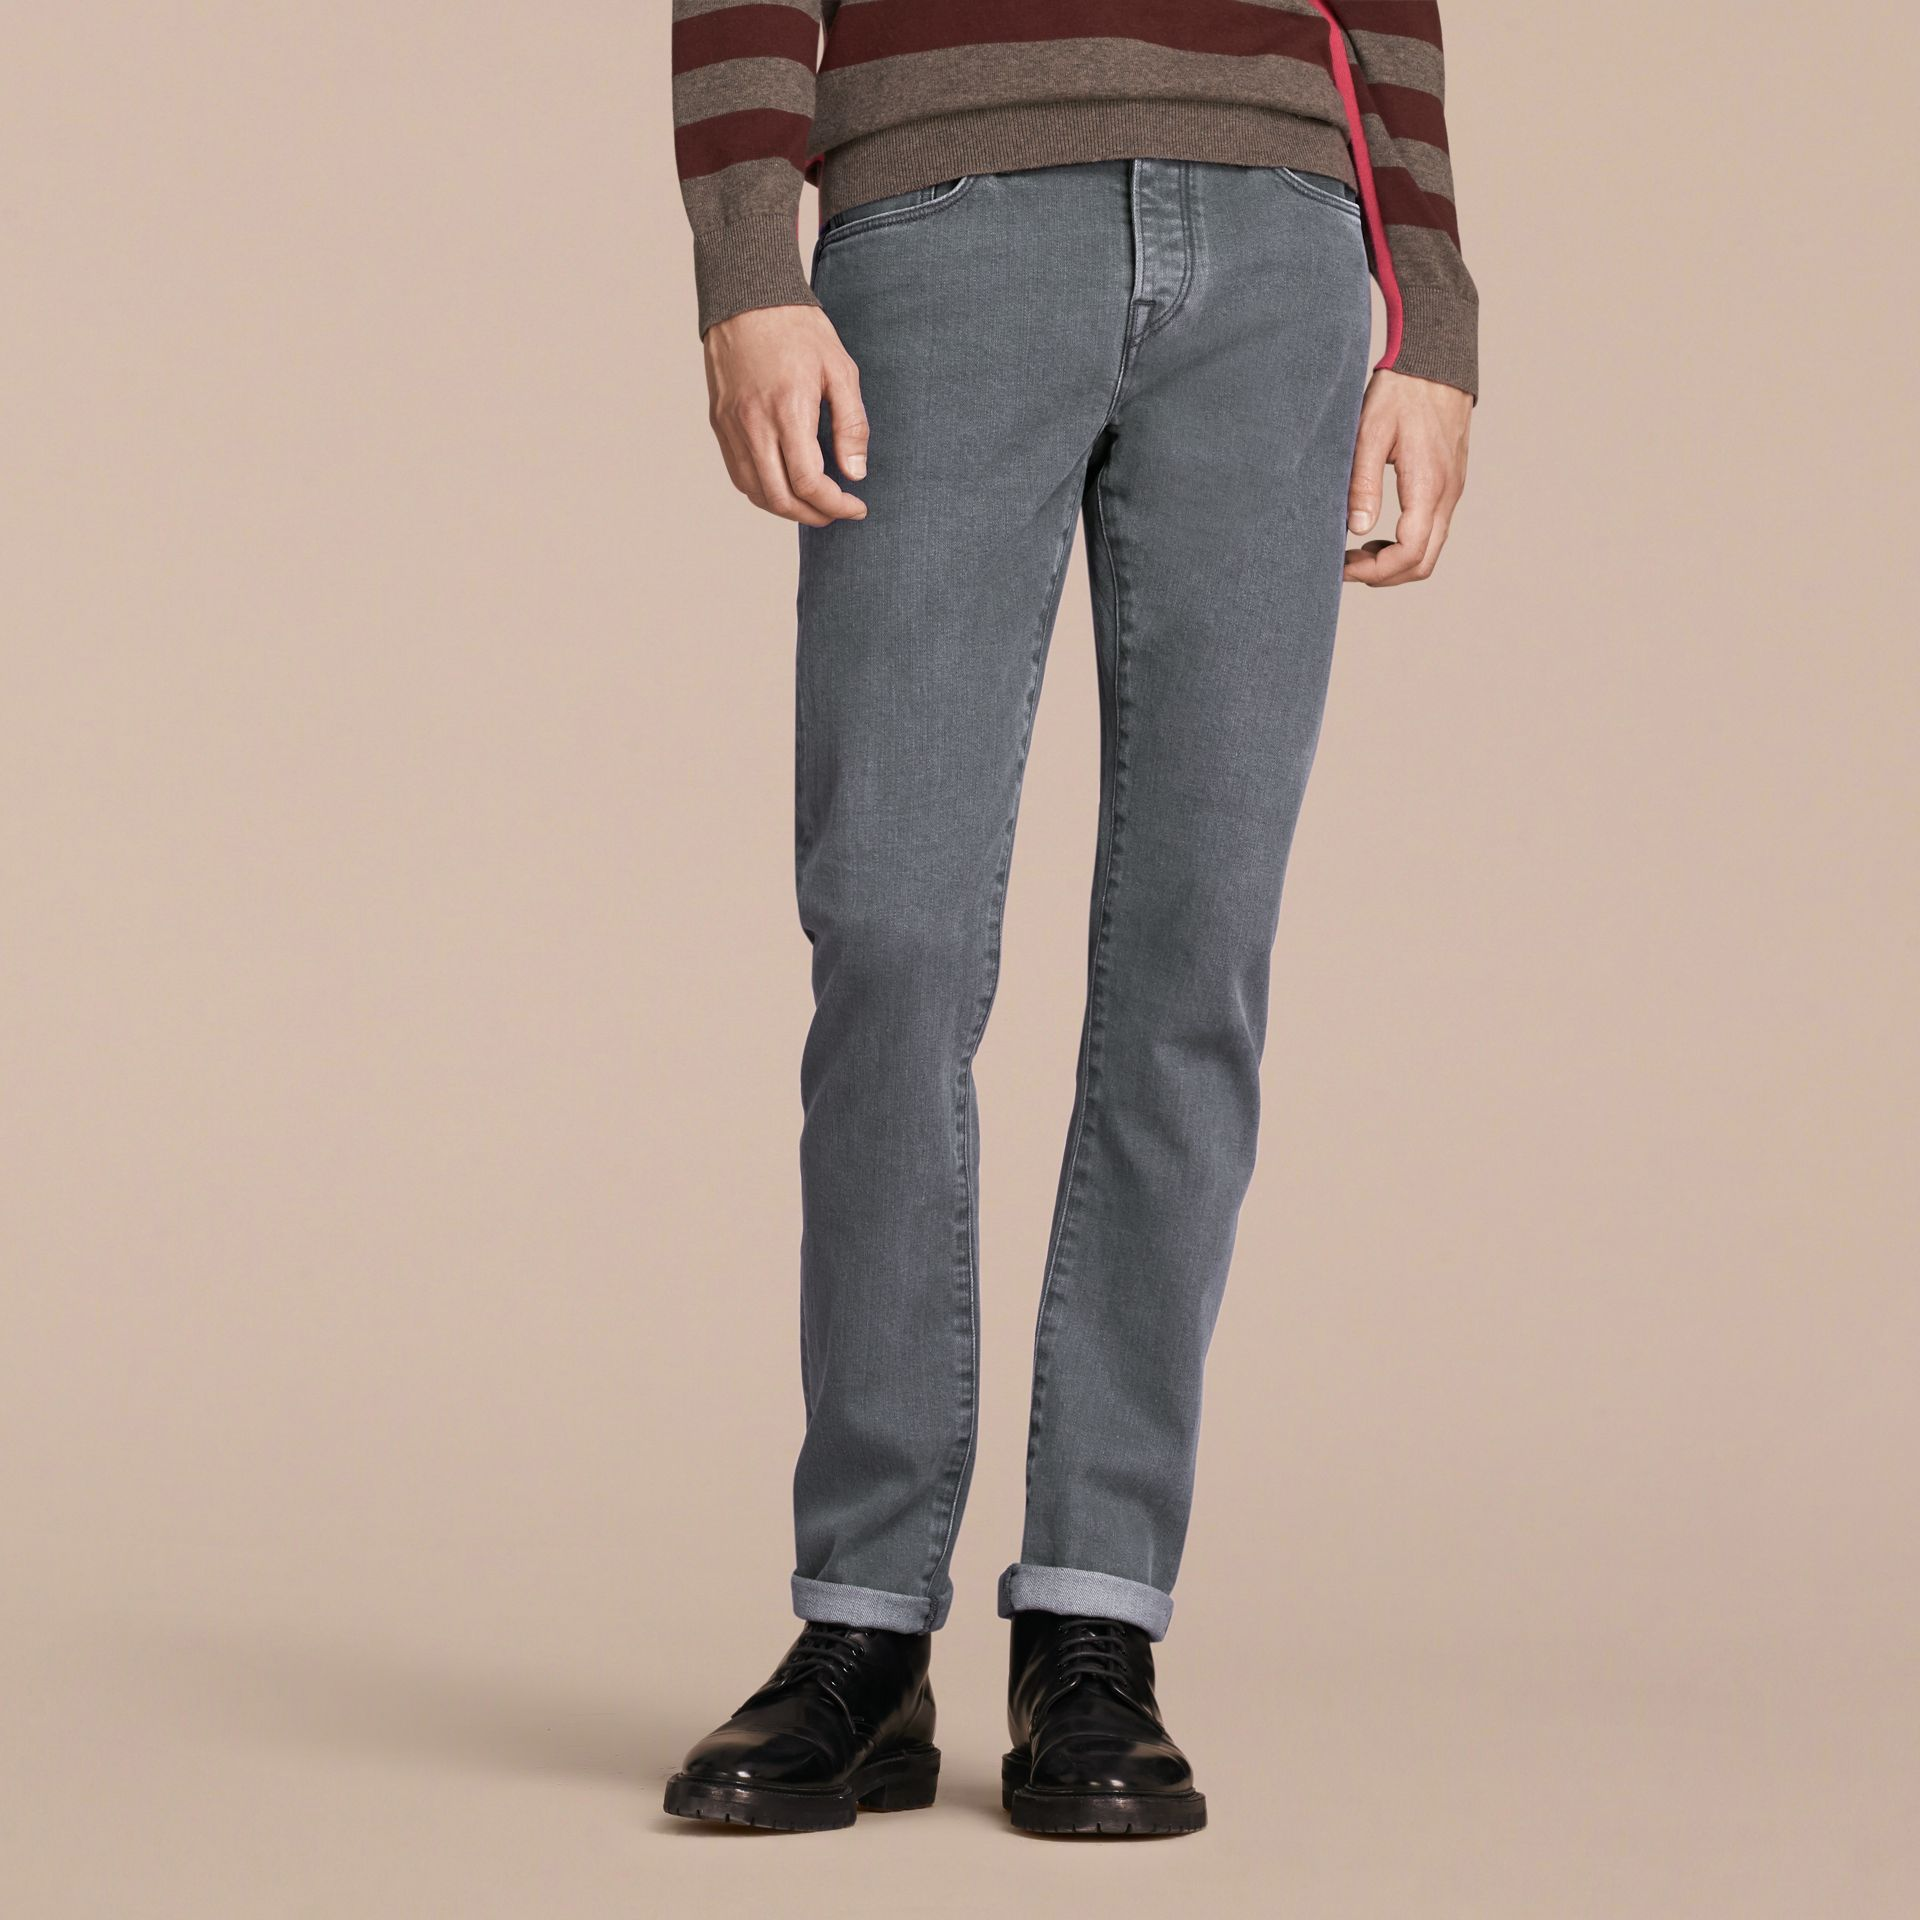 Jean de coupe droite en denim selvedge japonais - Homme | Burberry - photo de la galerie 7